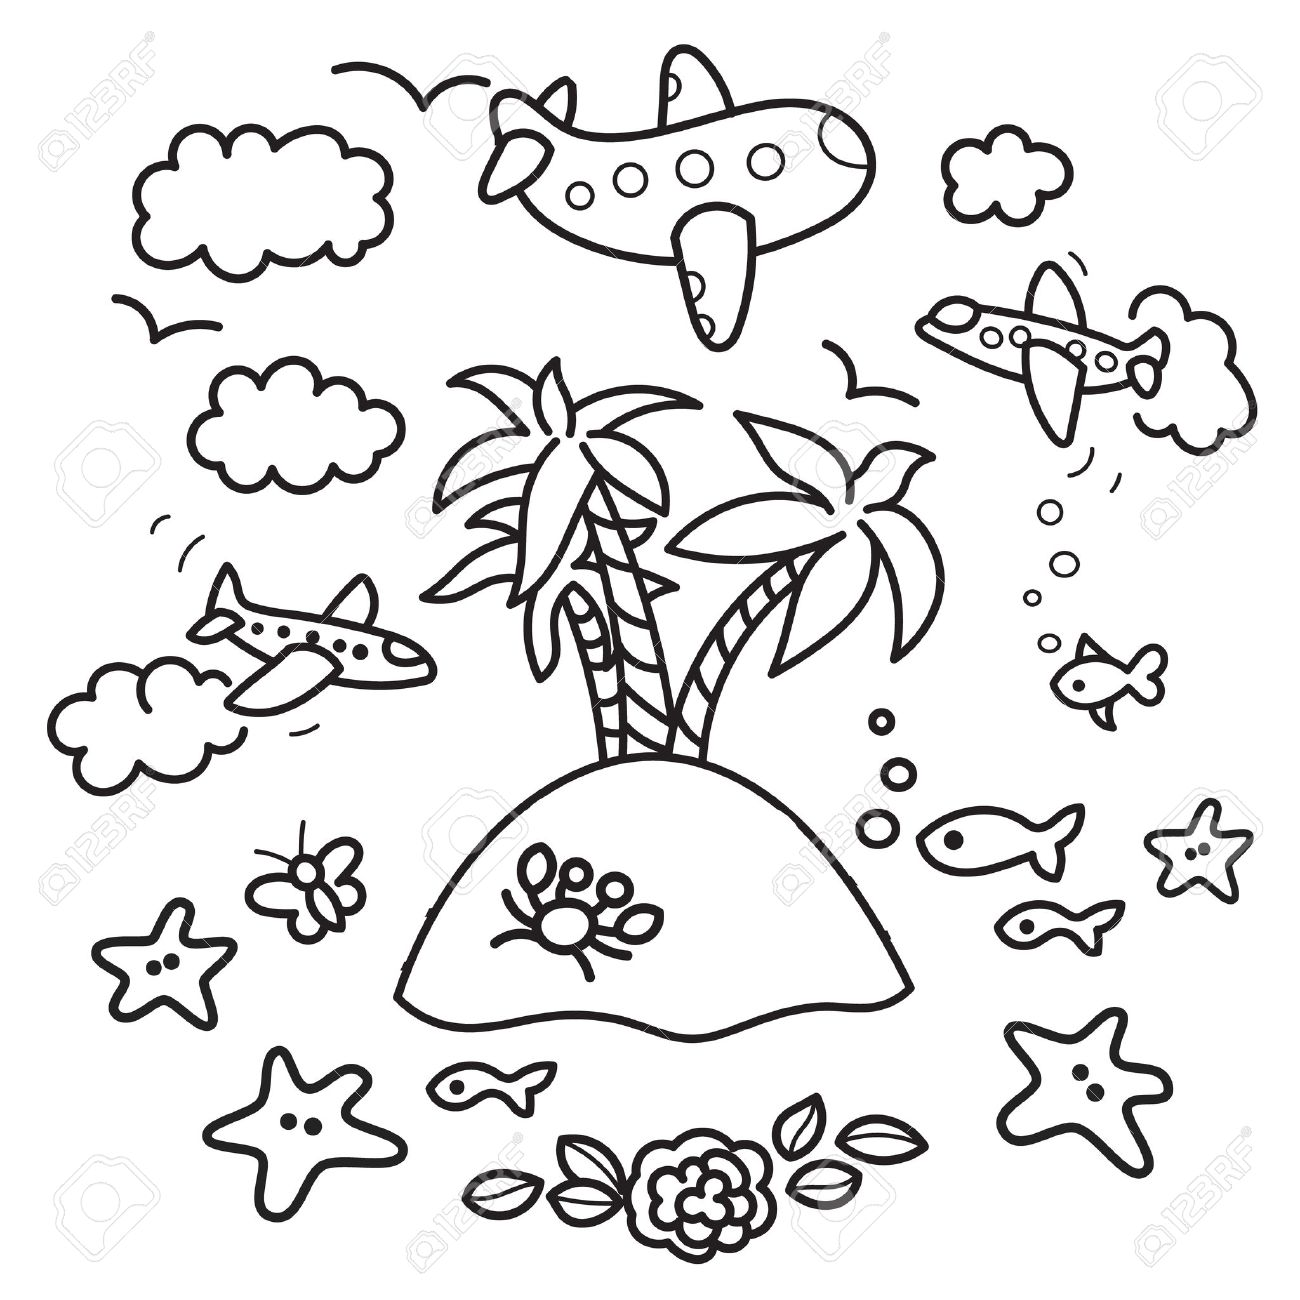 f6e58fac0116d Freehand Drawing - Paradise Island In Fish Tank